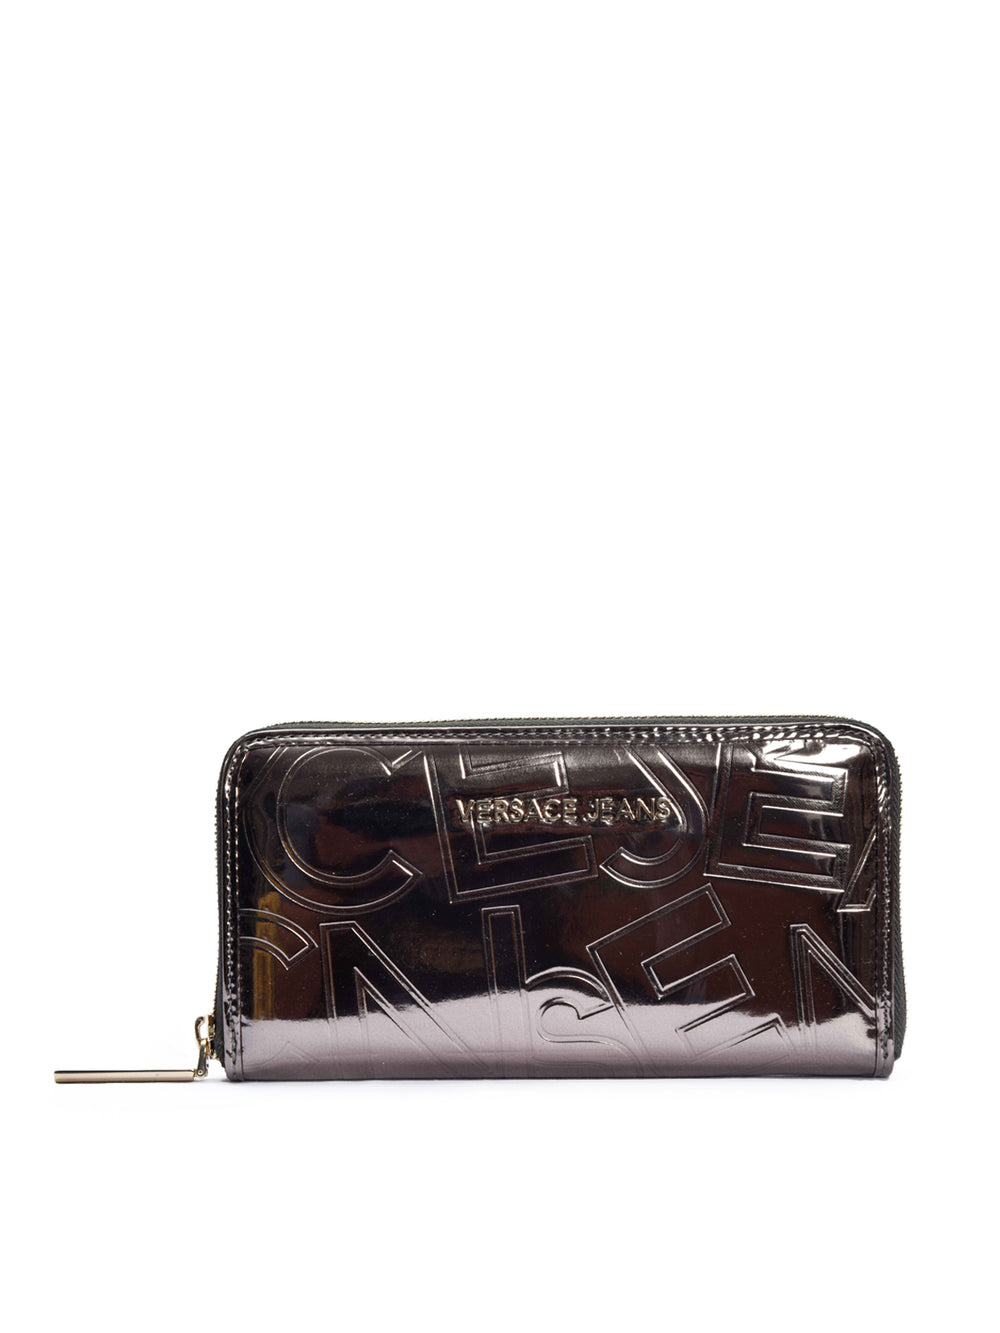 Metallic Zip Around Wallet, VERSACE JEANS - elilhaam.com